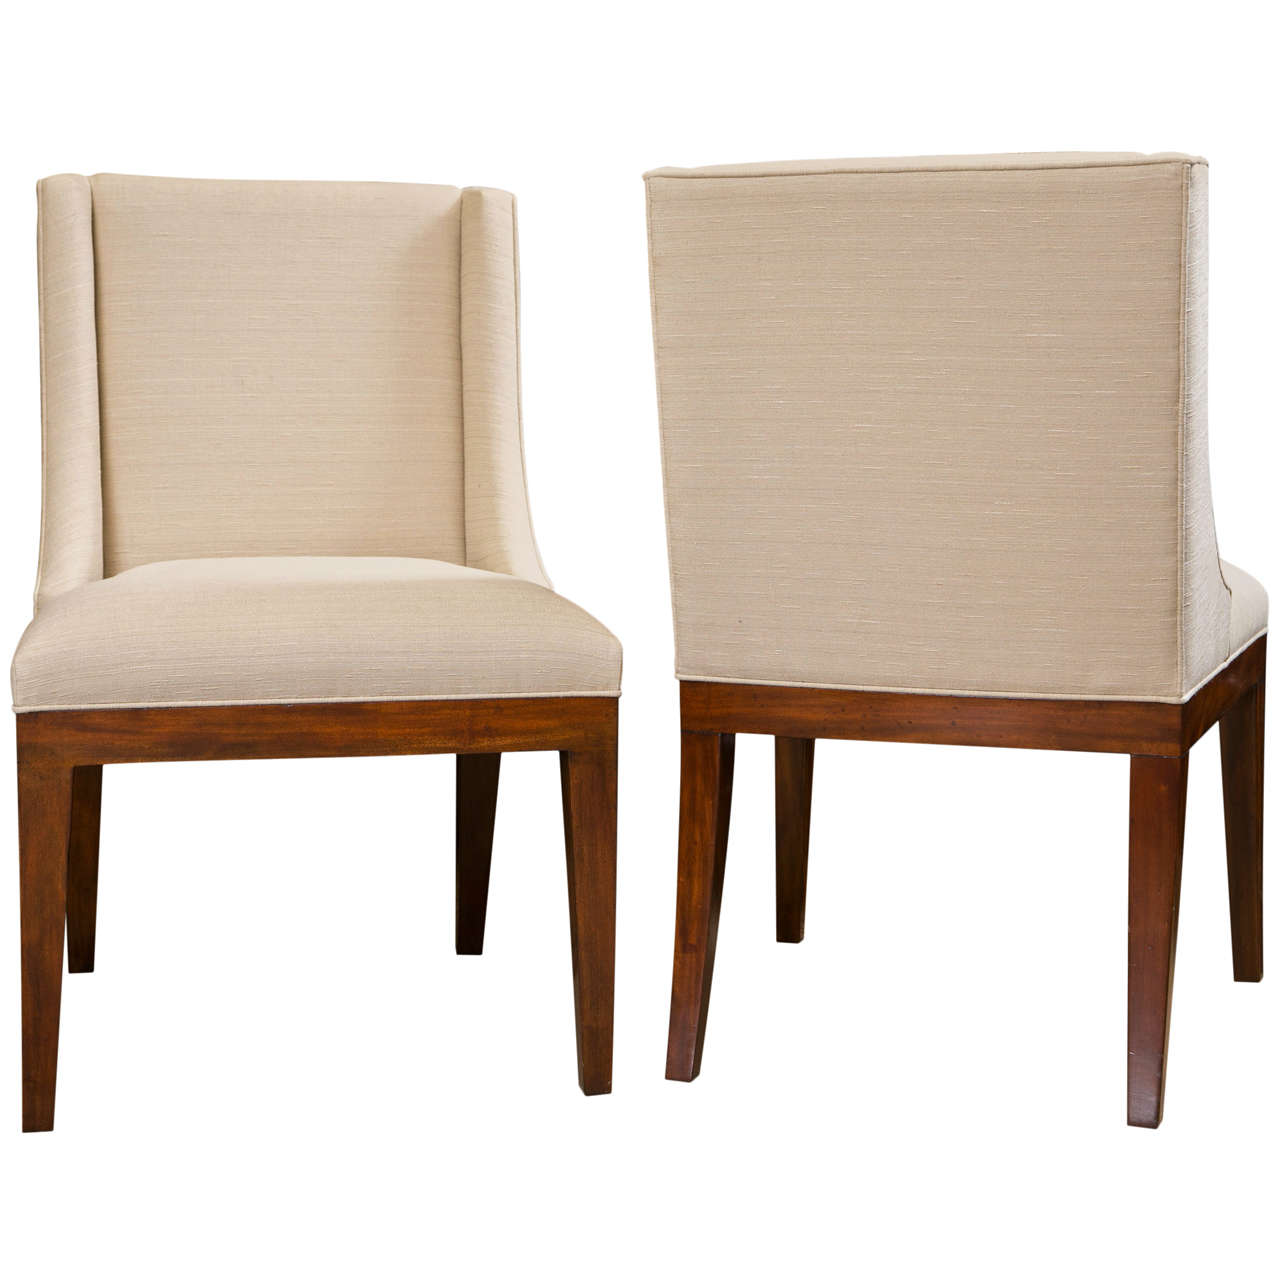 Set of 6 classic modern upholstered dining chairs at 1stdibs for Modern room chairs